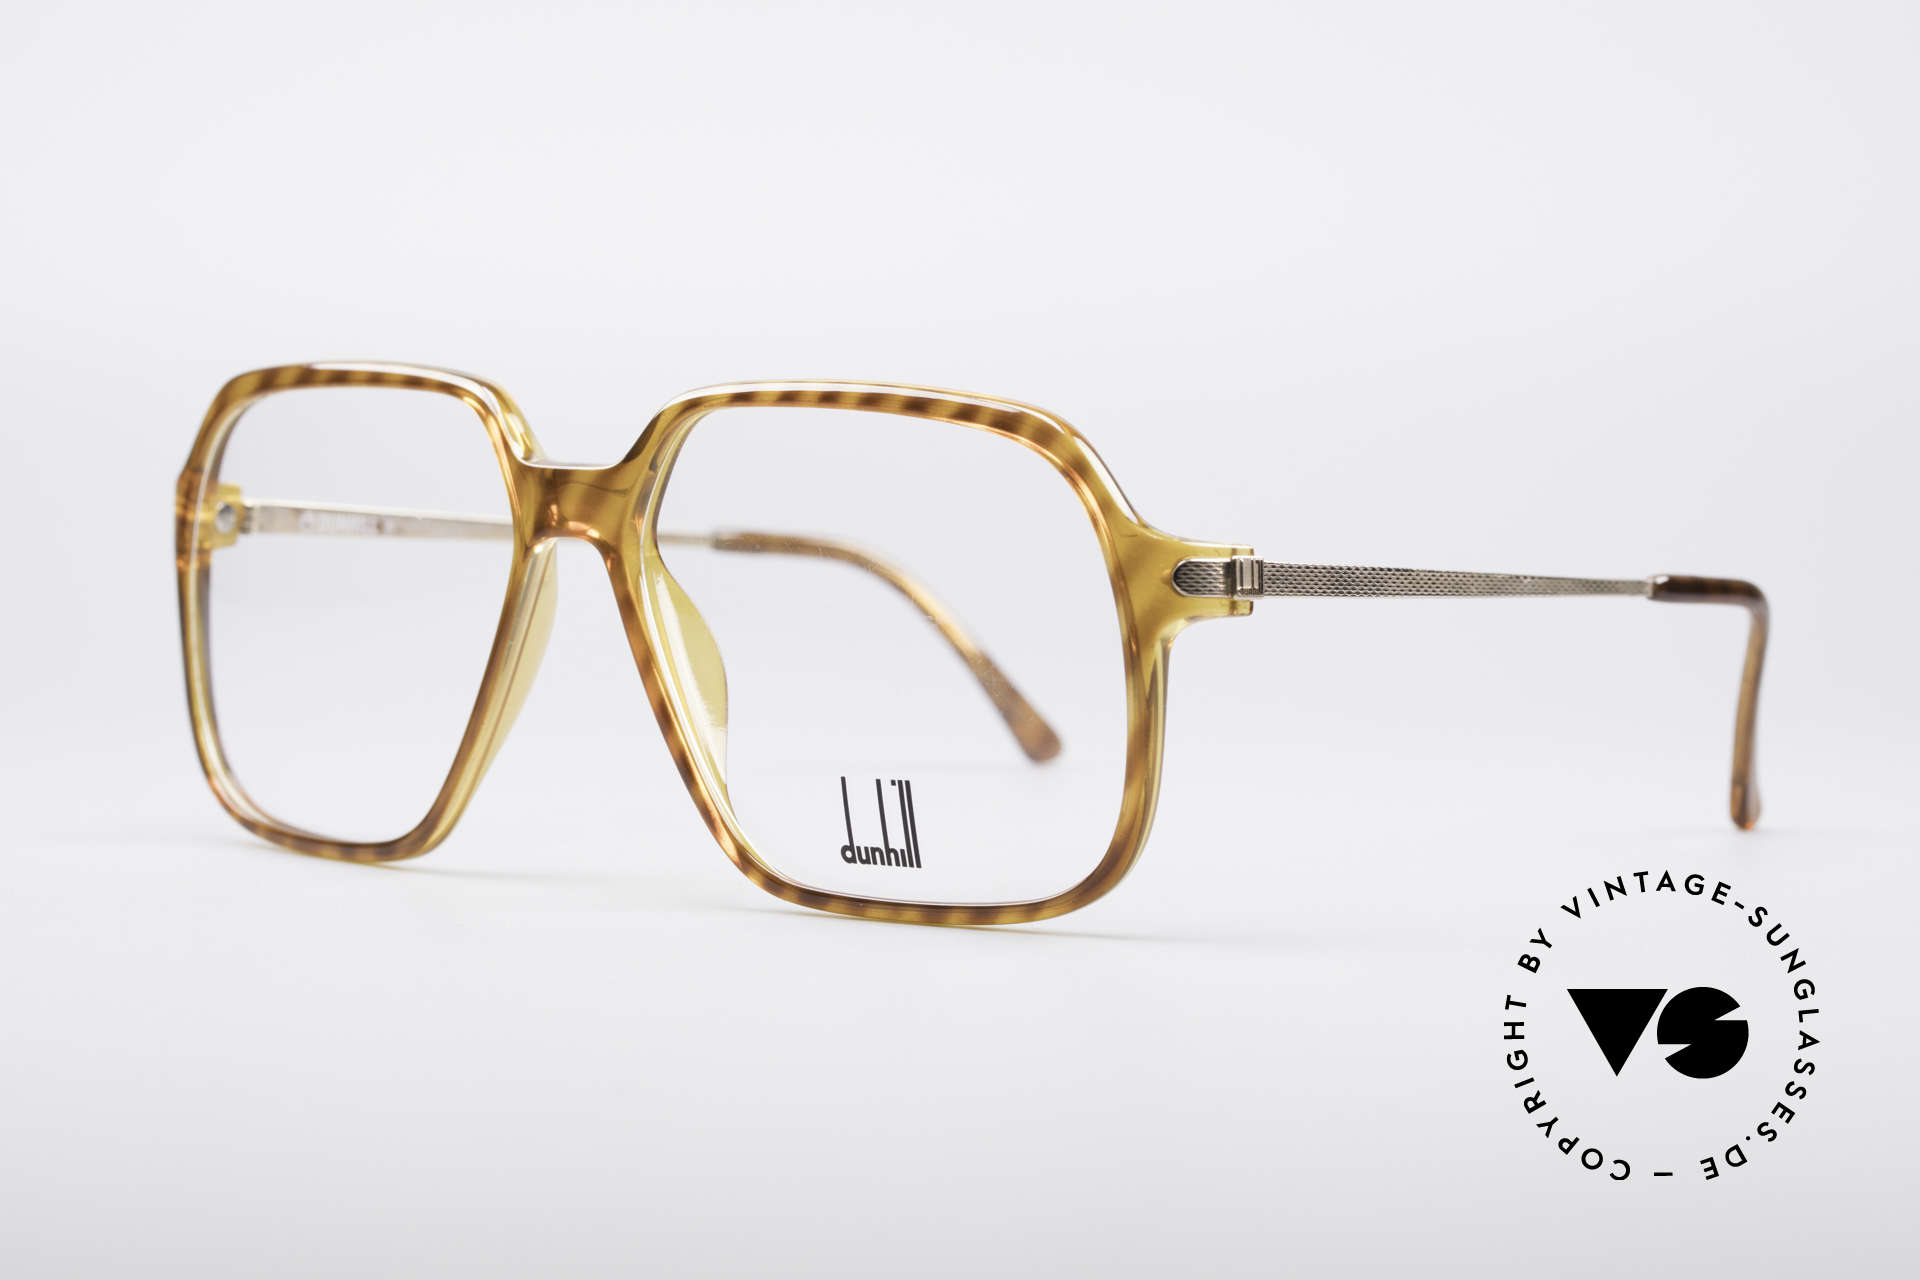 Dunhill 6108 Jay Z Hip Hop Vintage Frame, very comfortable due to Optyl material (lightweight), Made for Men